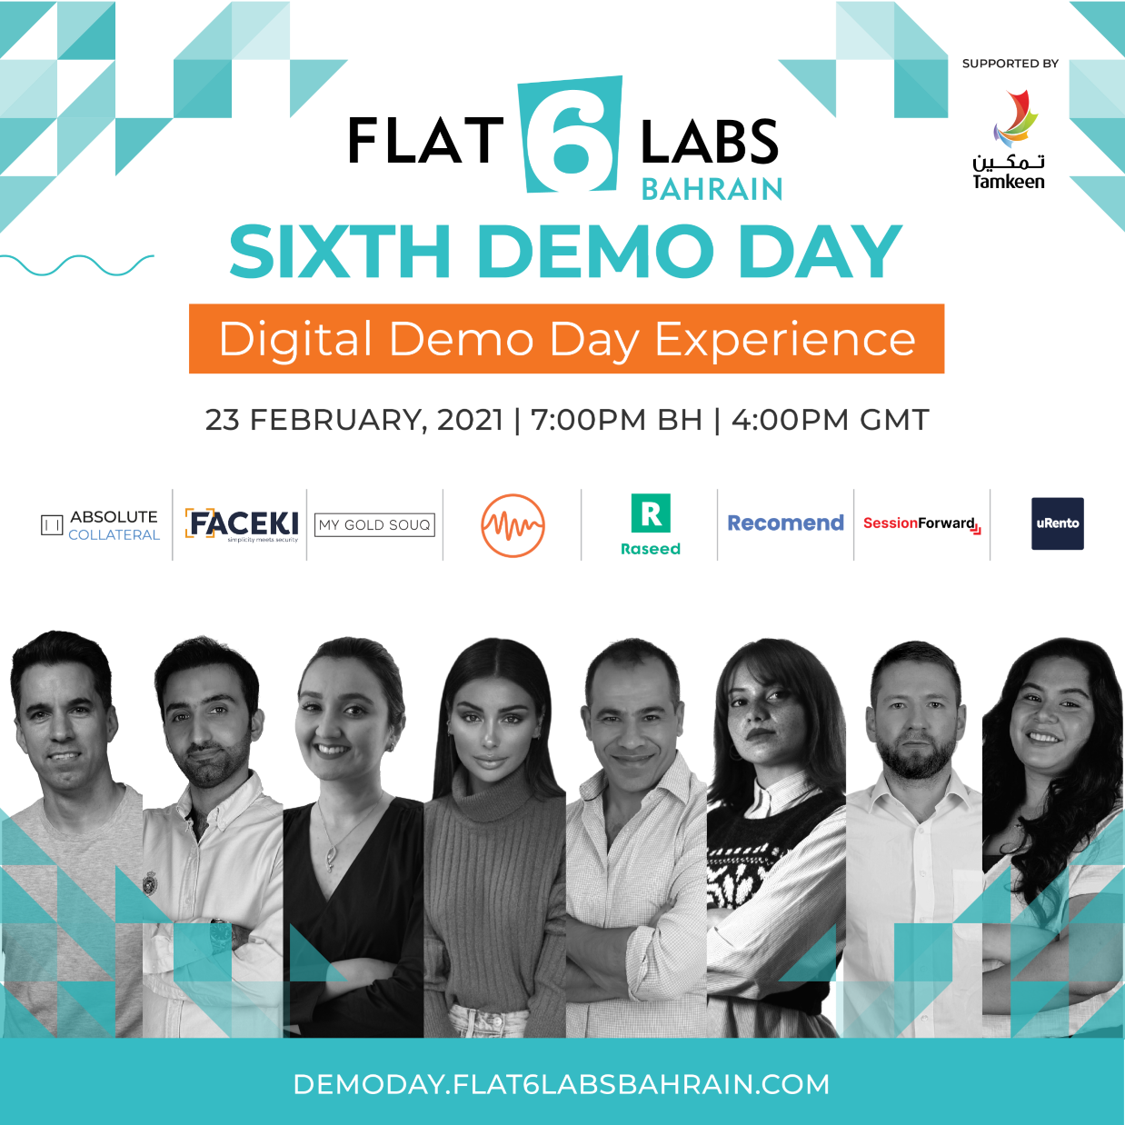 Flat6Labs Bahrain distributes $250,000 among cohort winners